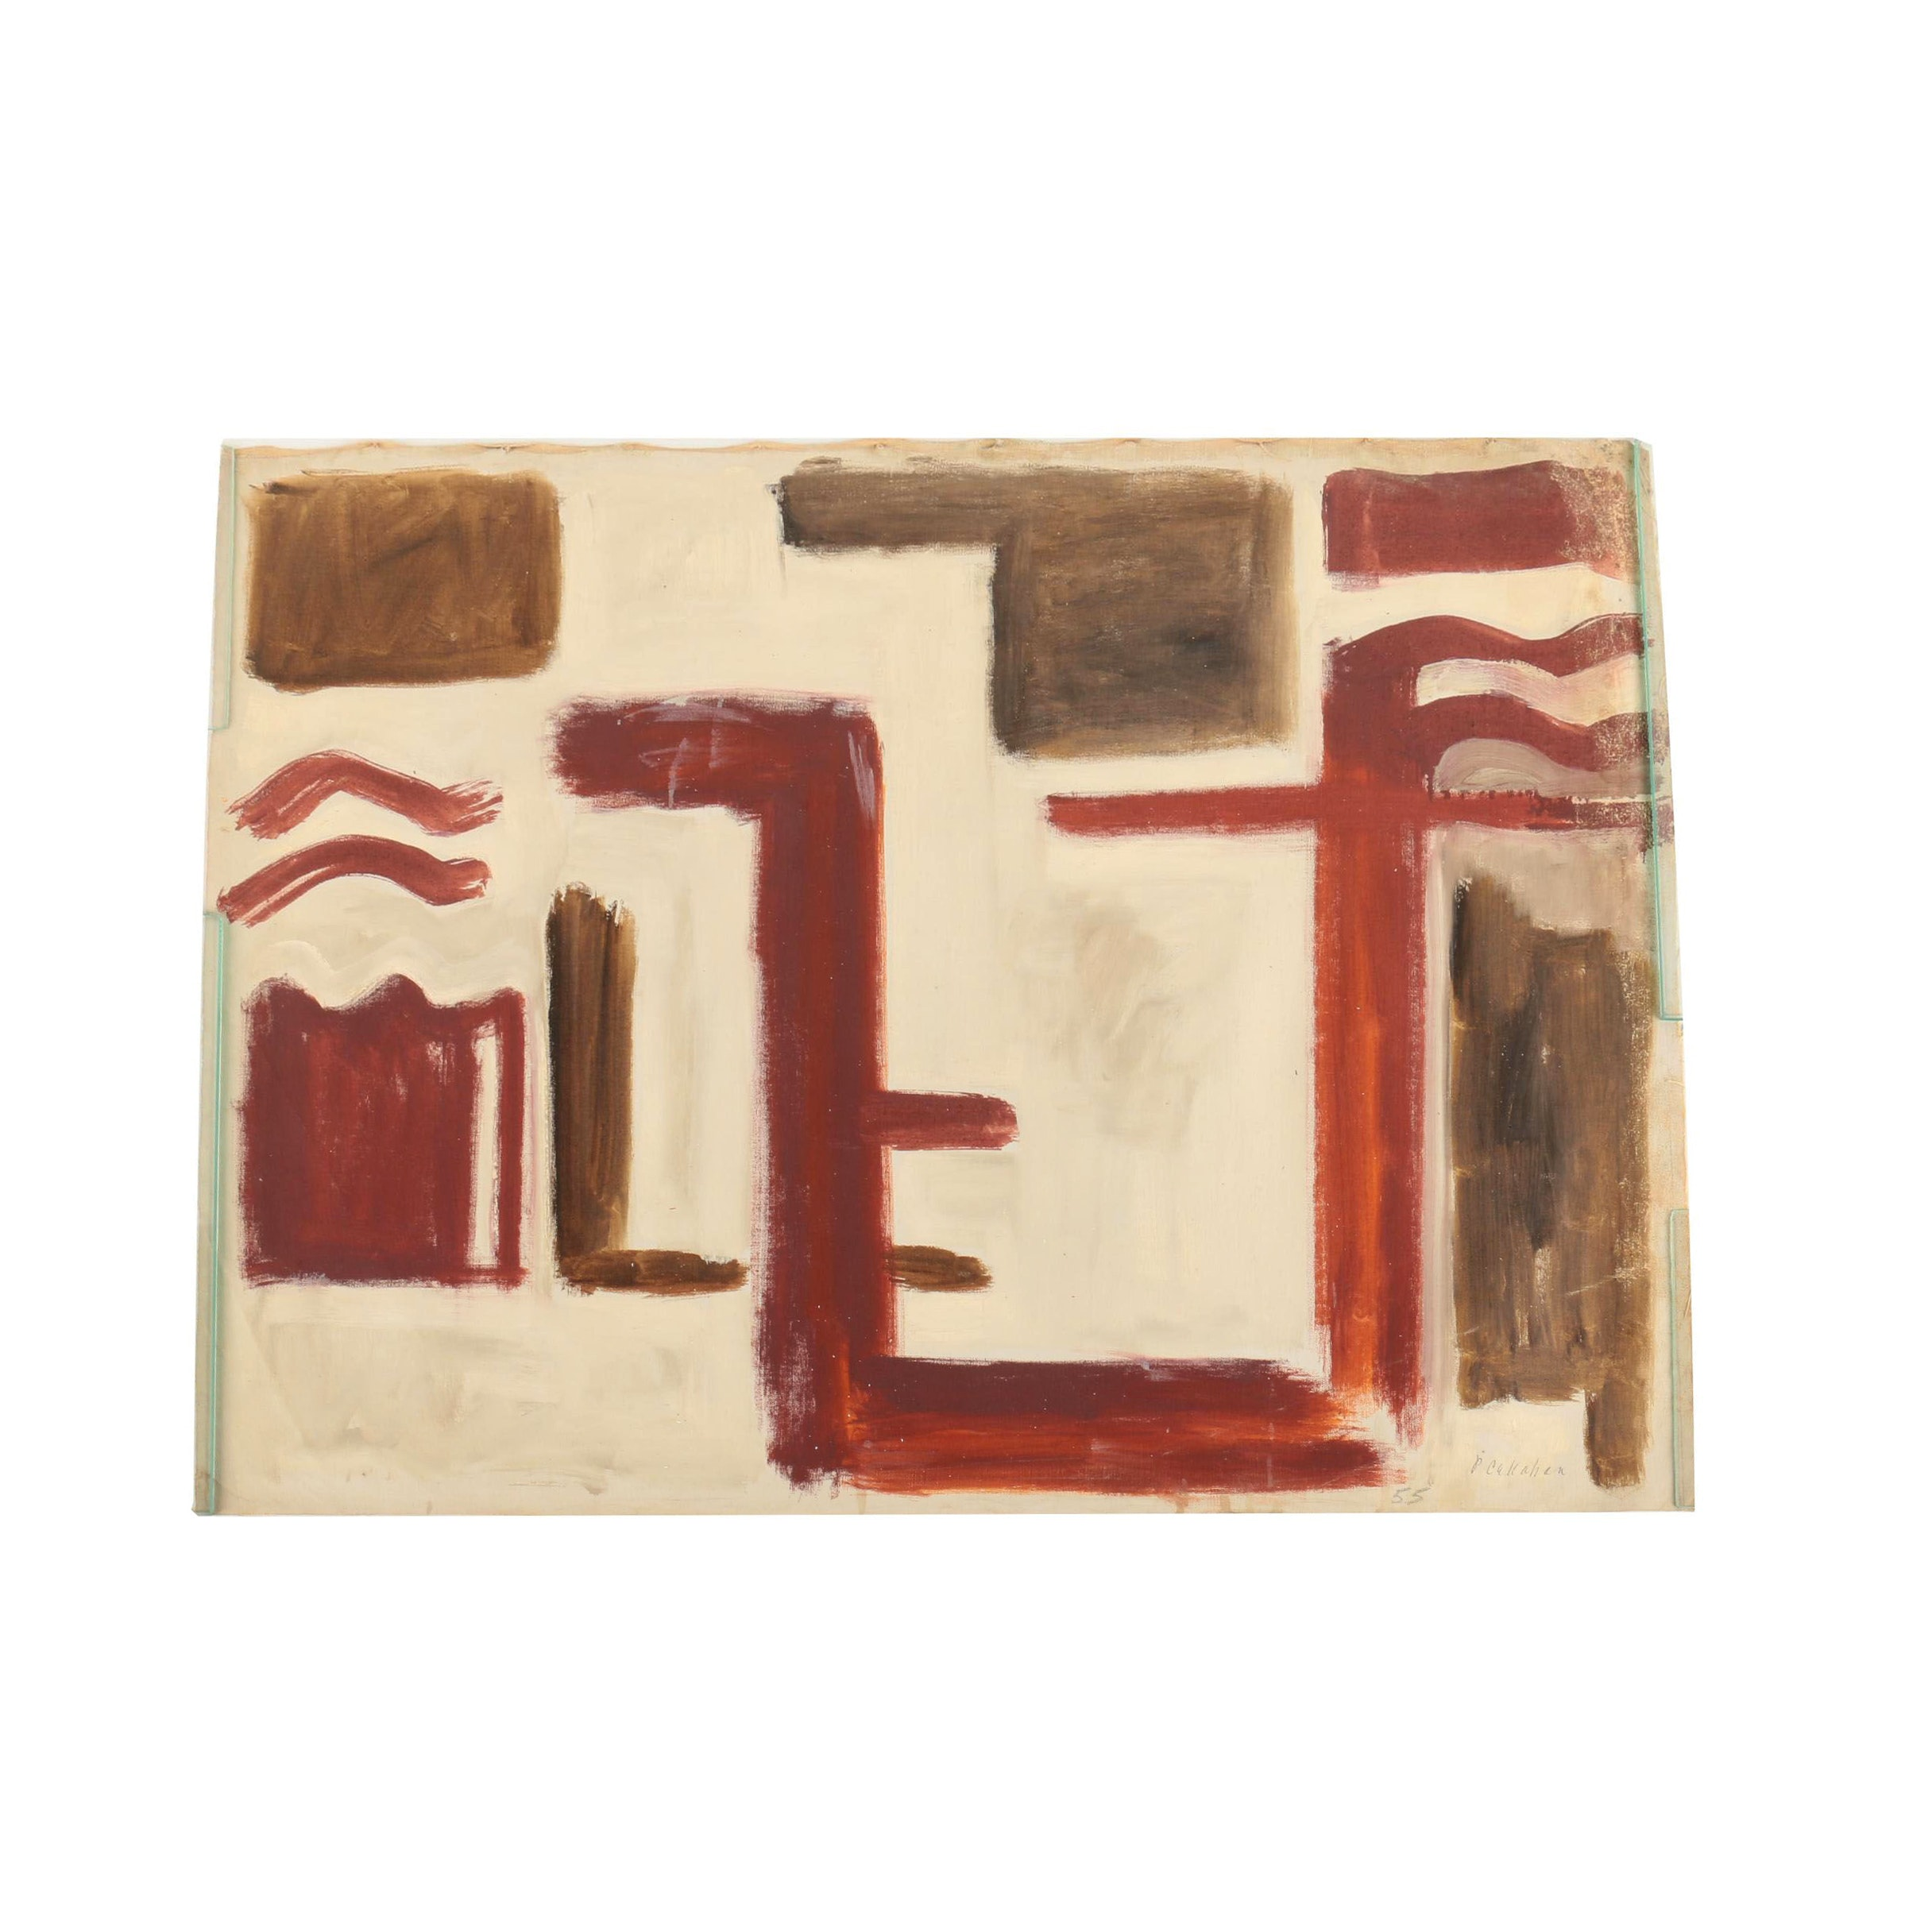 Phillip Callahan Oil Painting on Canvas of Abstract Red and Brown Shapes